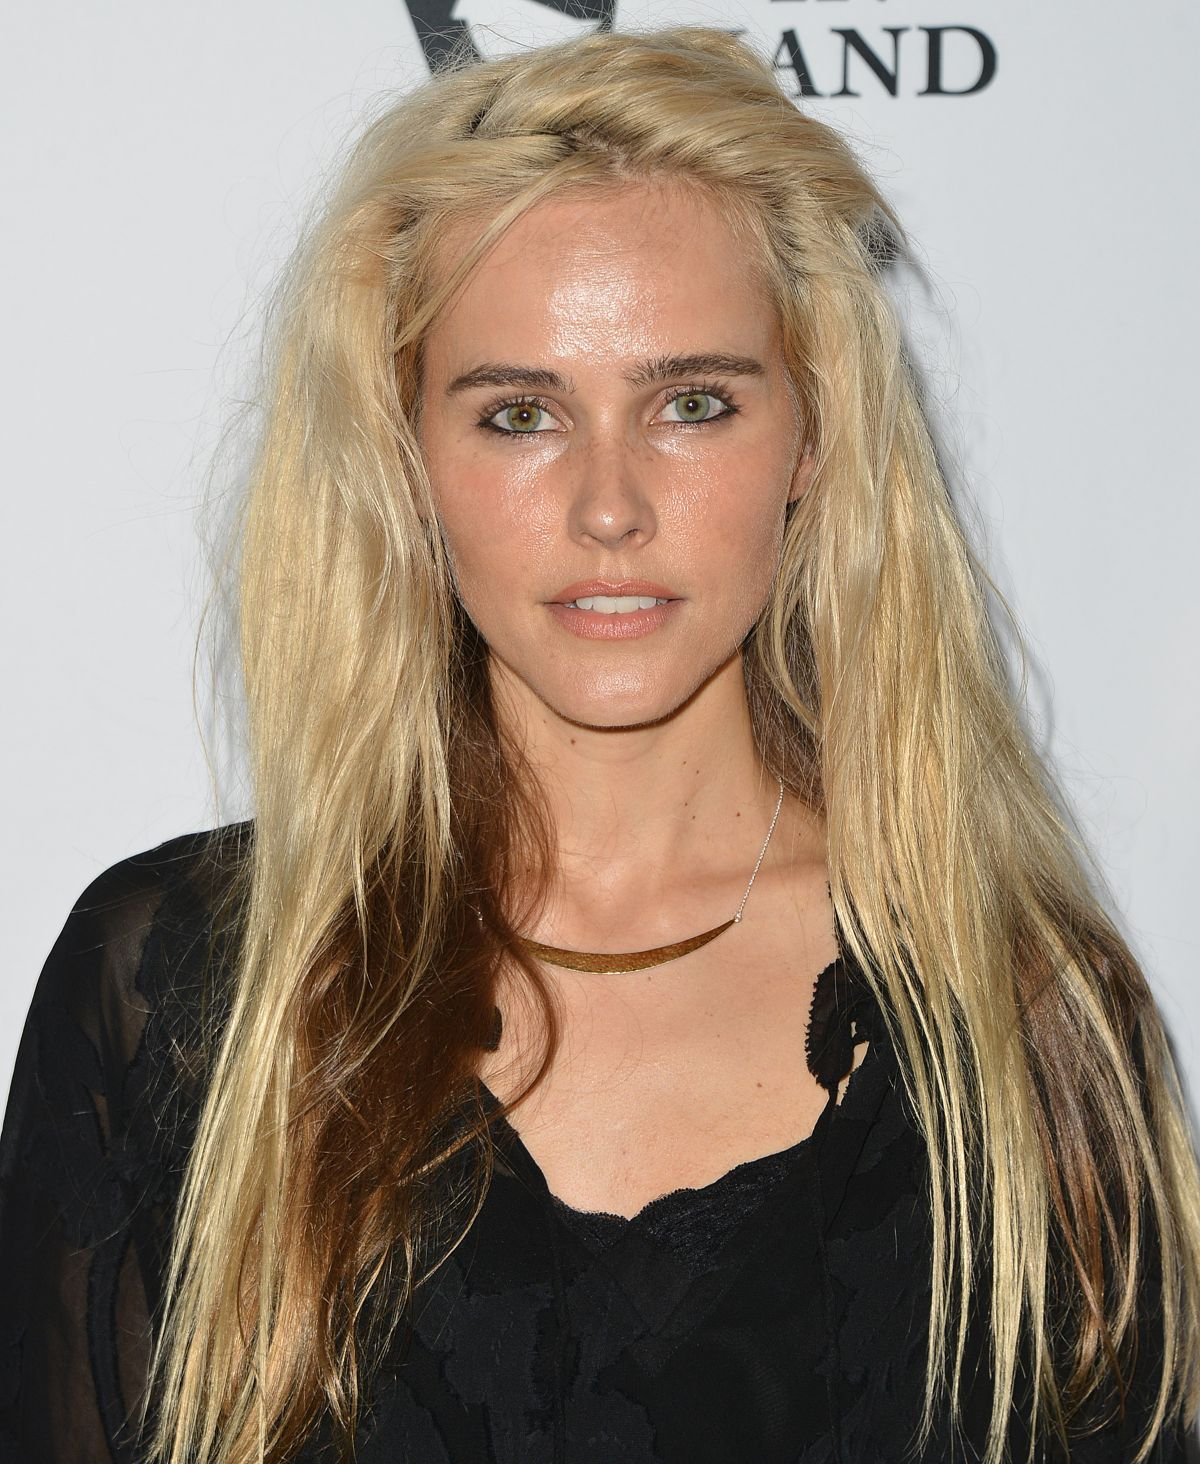 isabel lucas - photo #33